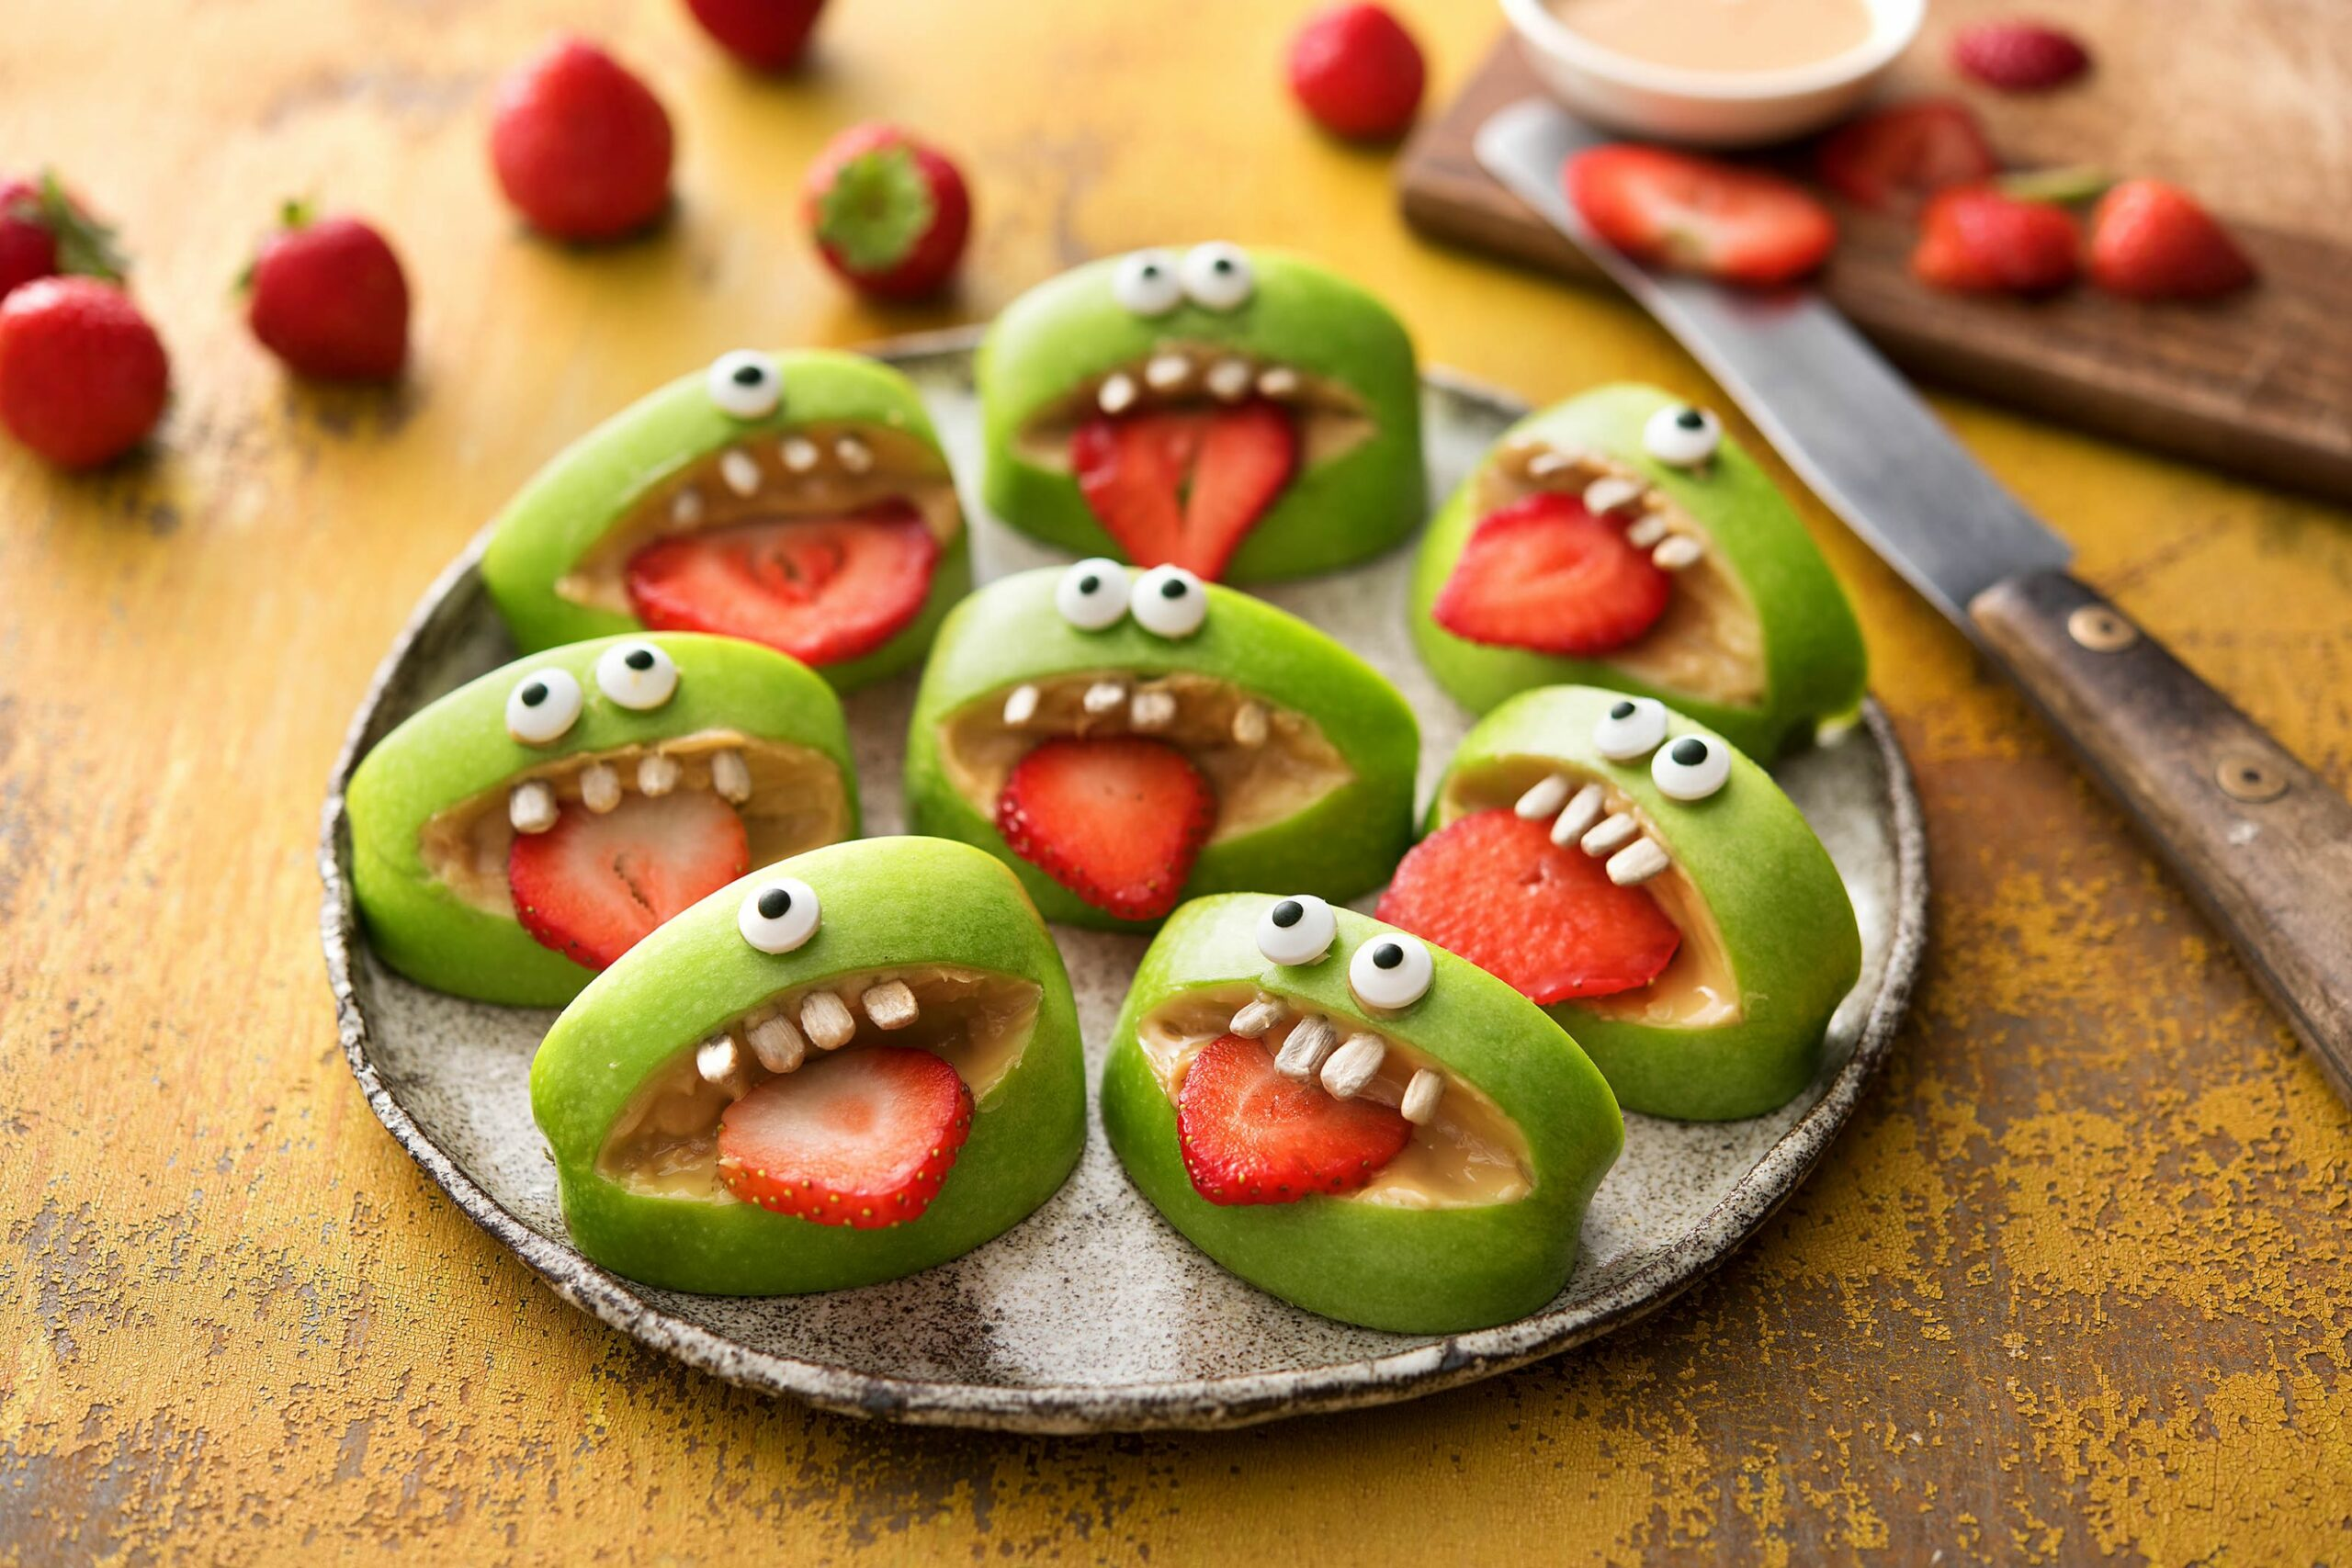 12 Healthy Halloween Snacks For The Kids - halloween vegetable ideas